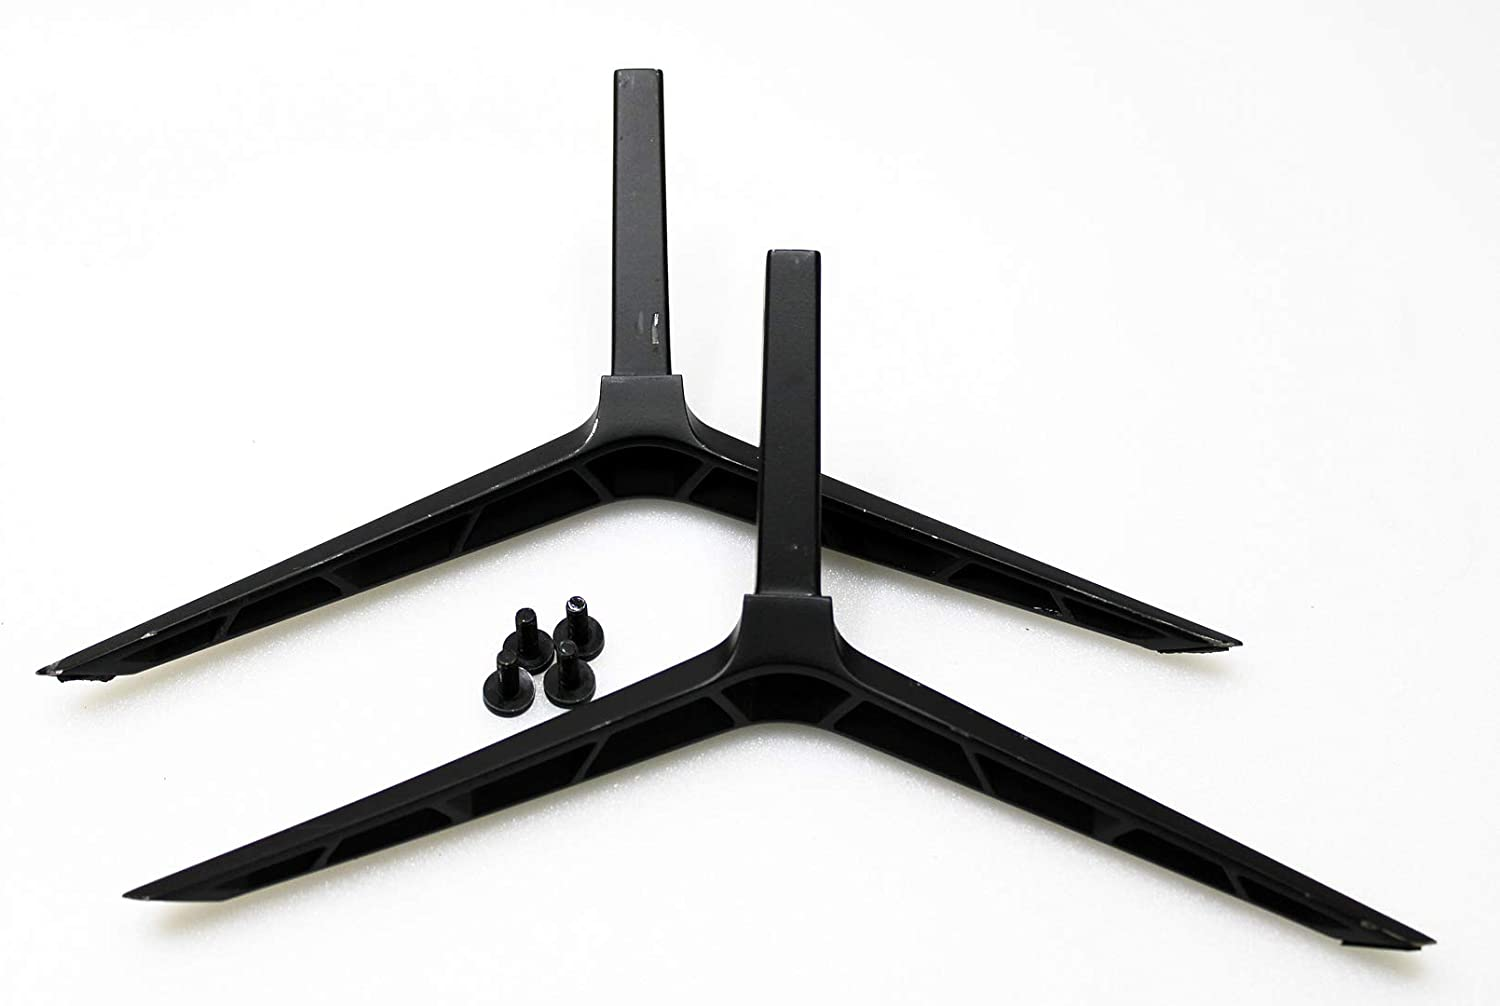 Complete Base Stand Pedestal Legs with Screw Set for Vizio D60-F3